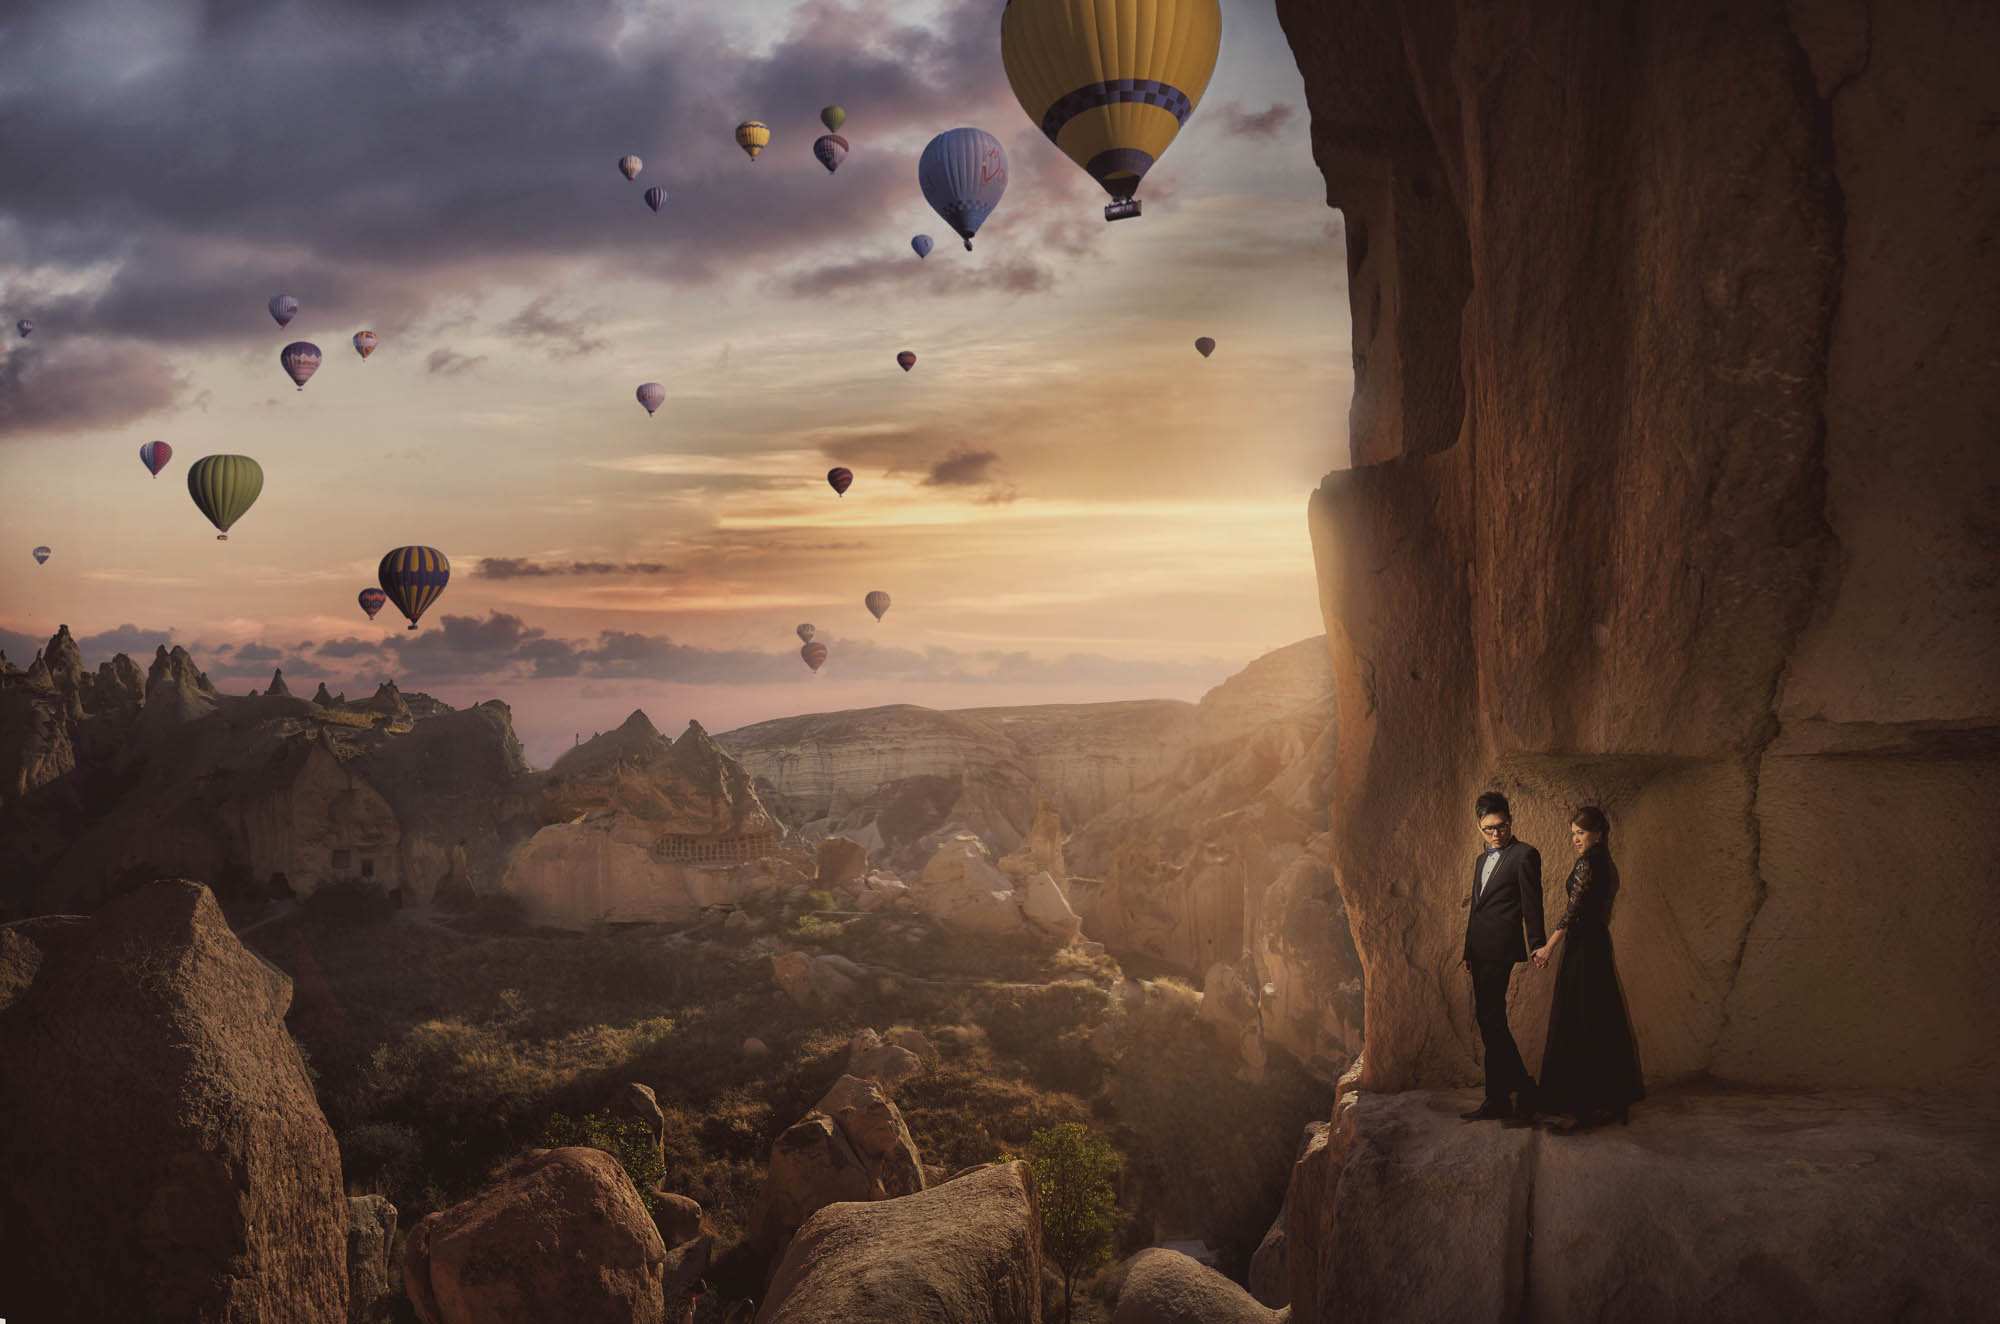 Bride and groom in black, standing at cliff with hot air balloons in distance, by CM Leung